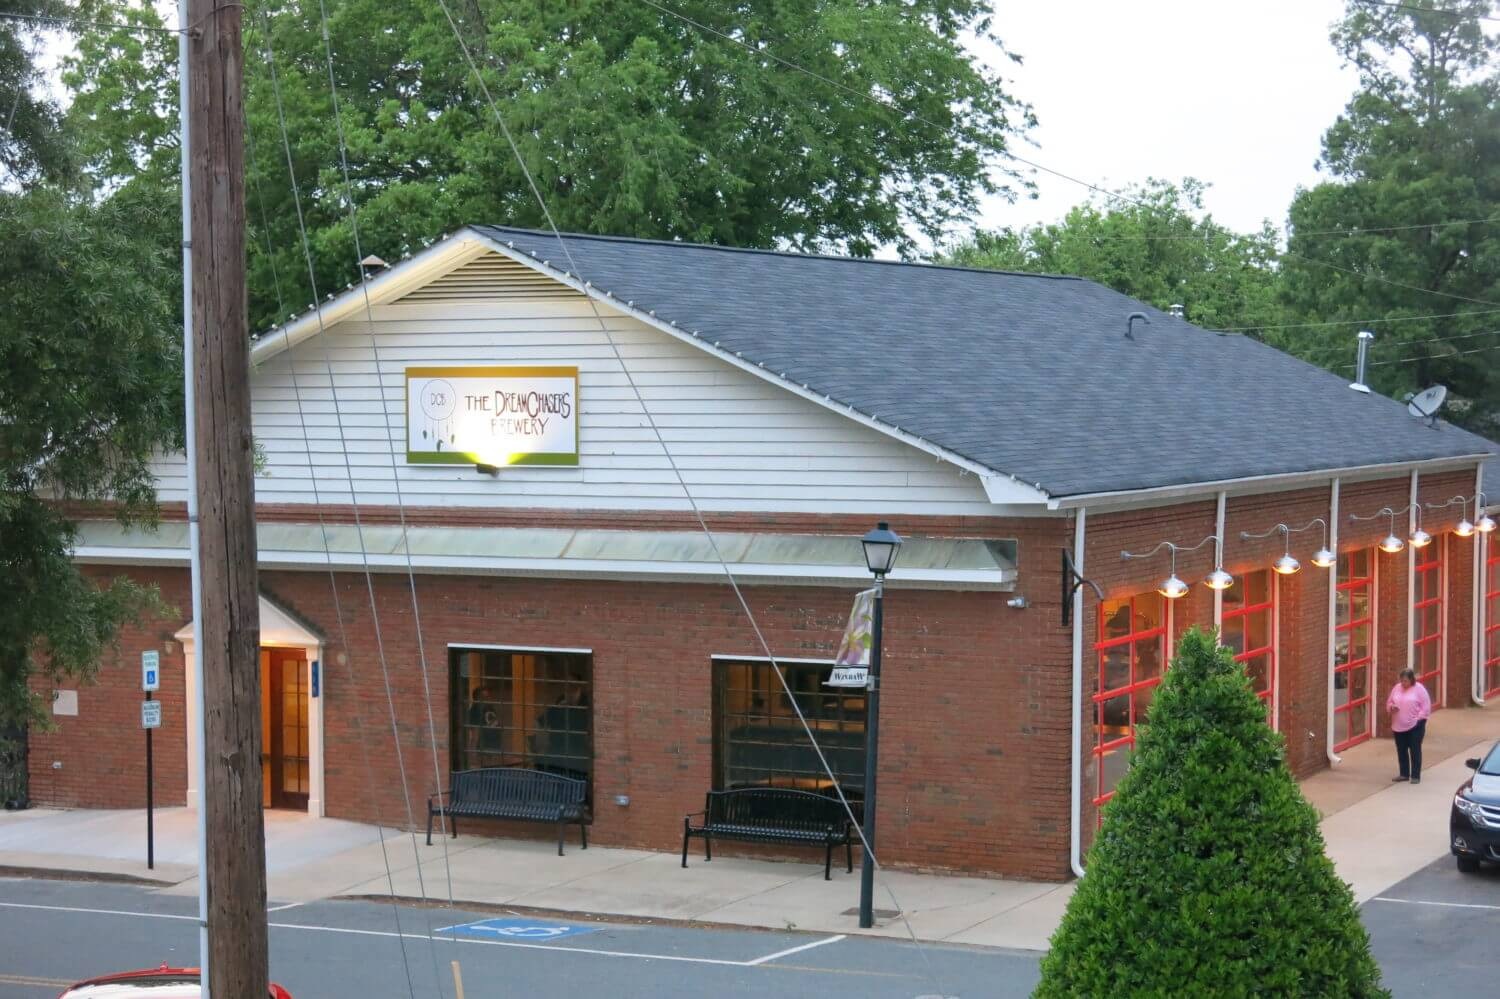 The-Dreamchasers-Brewery-in-Waxhaw-1-e1463143988907.jpg